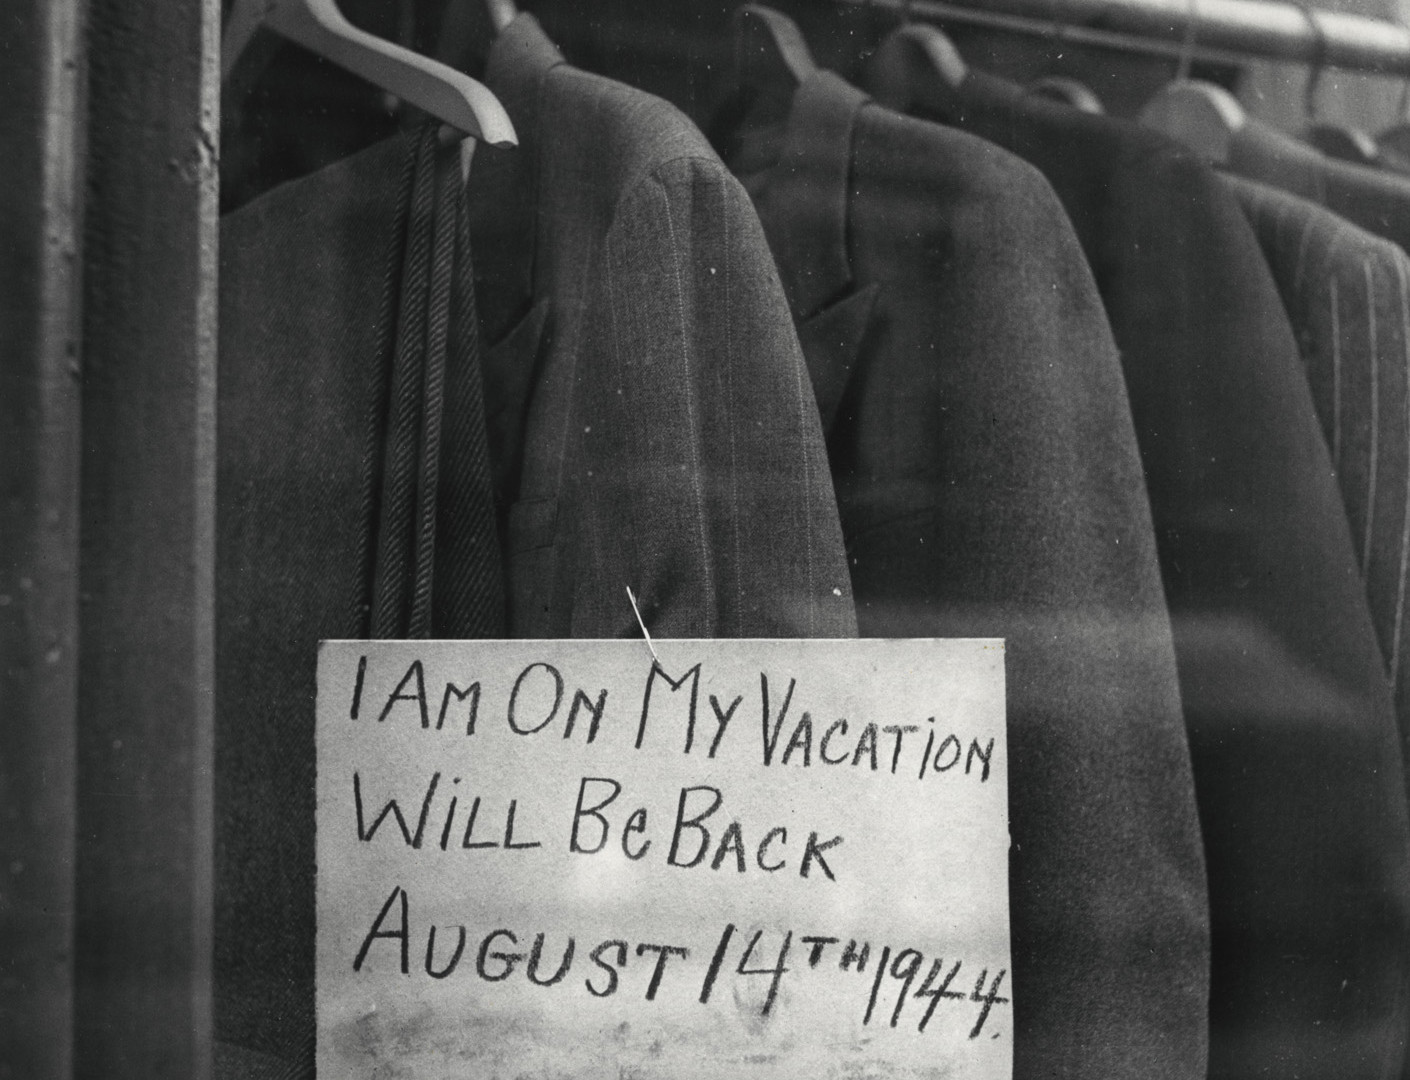 Irving Penn, I Am On My Vacation, New York, 1944